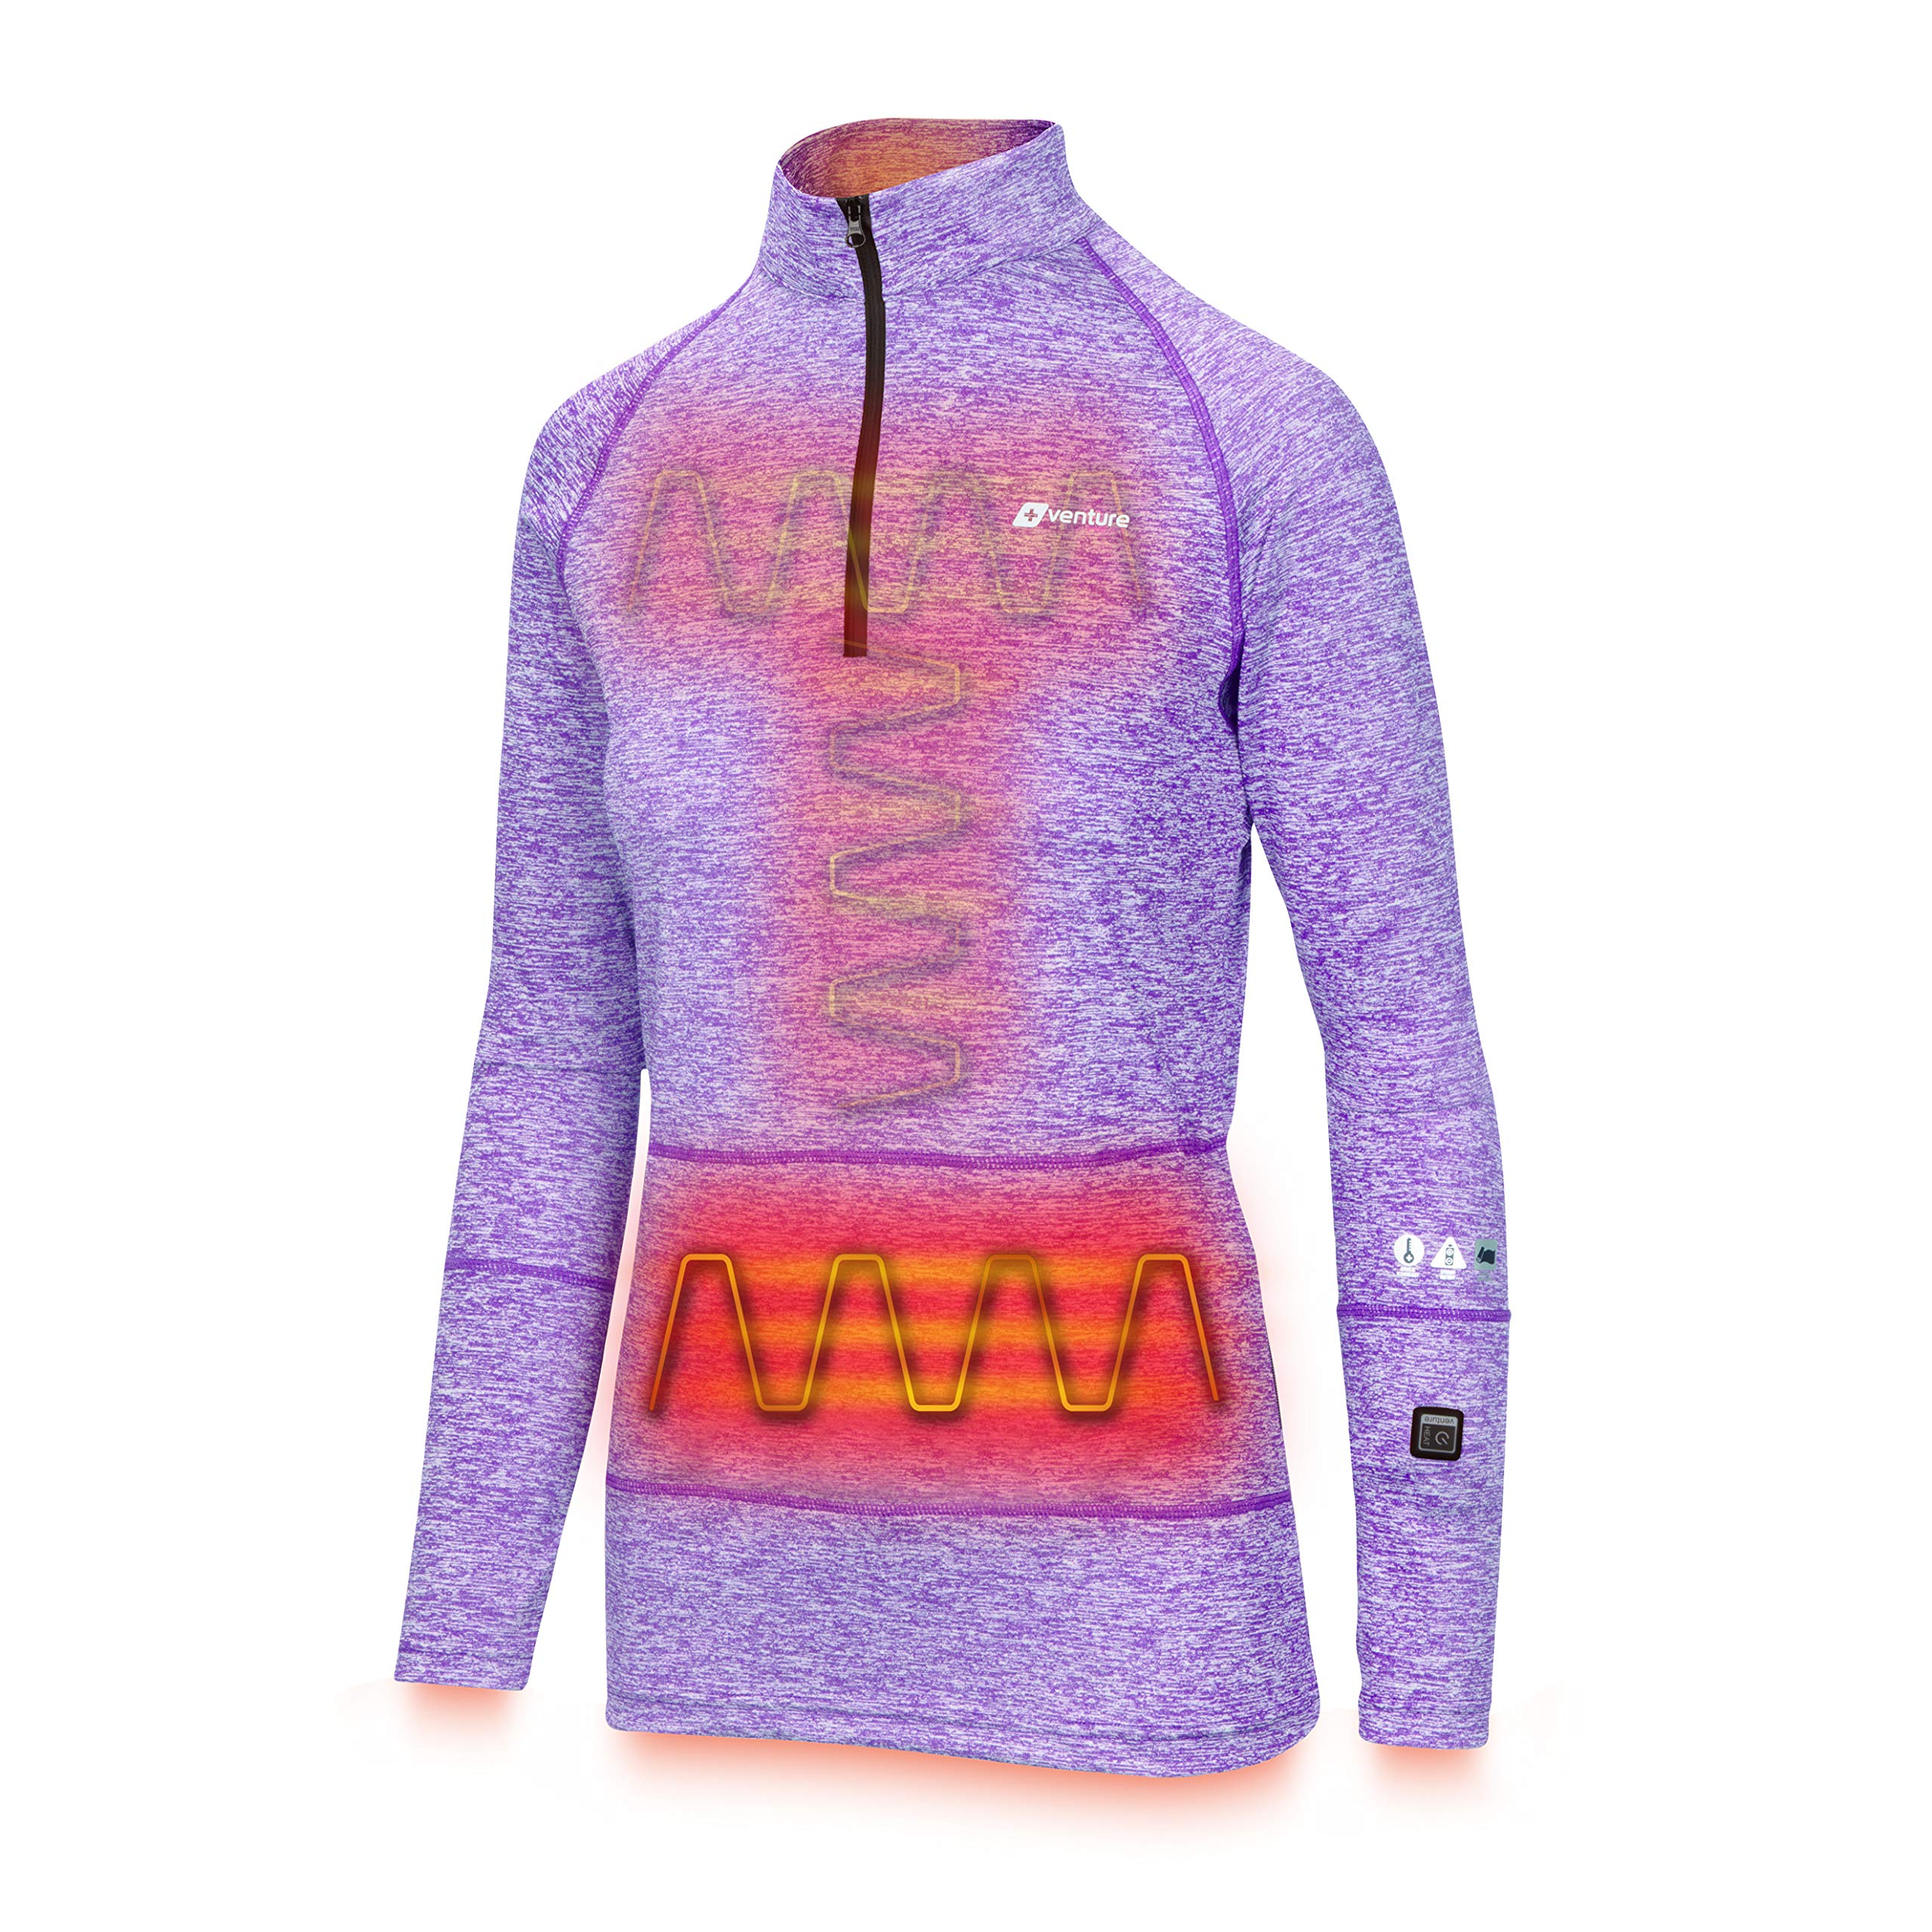 Venture Heat Women's Heated Shirt Thermal Underwear with Battery Pack - Long John, 1/4 Zip Electric Base Layer, Nomad (S, Purple) by Venture Heat